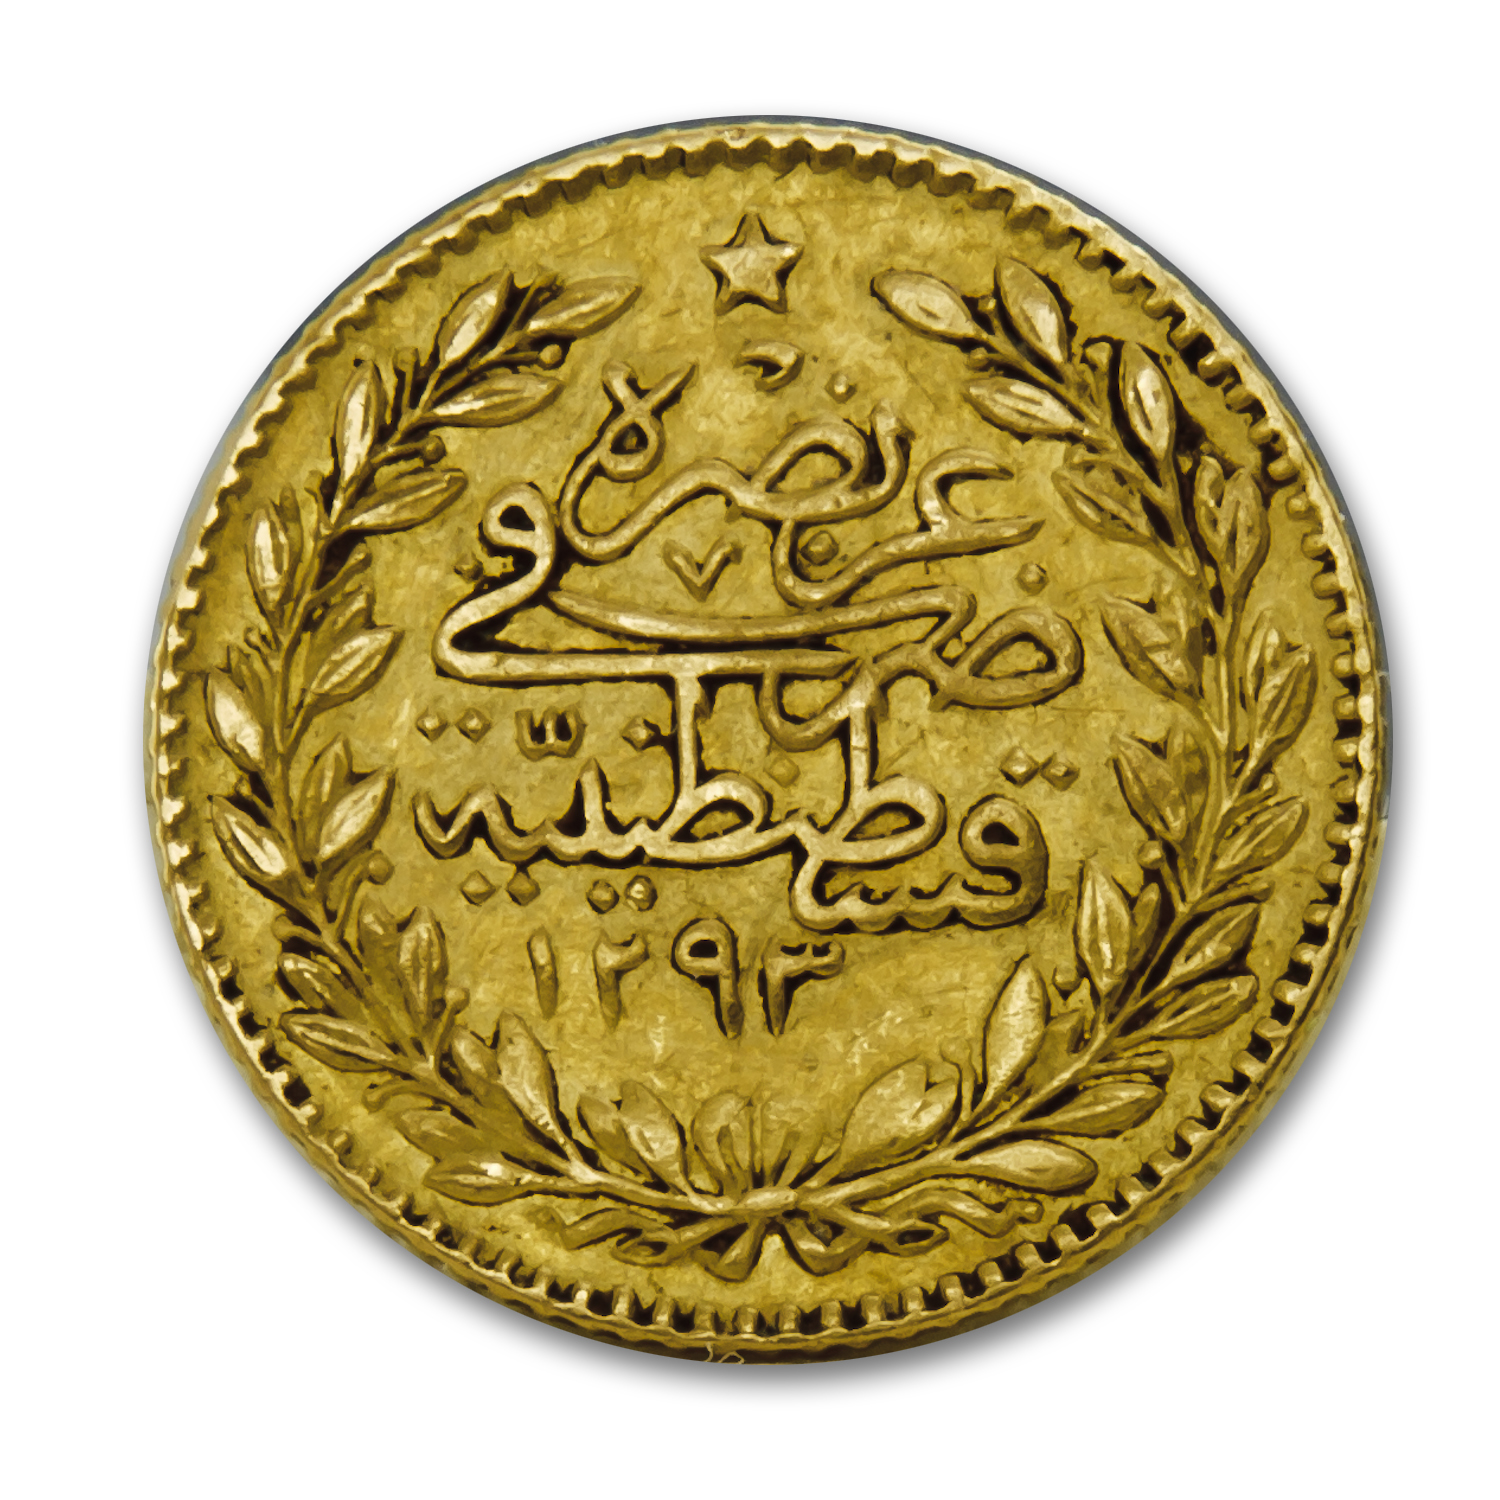 Turkey Gold 25 Kurush (19th Century, Random Dates)